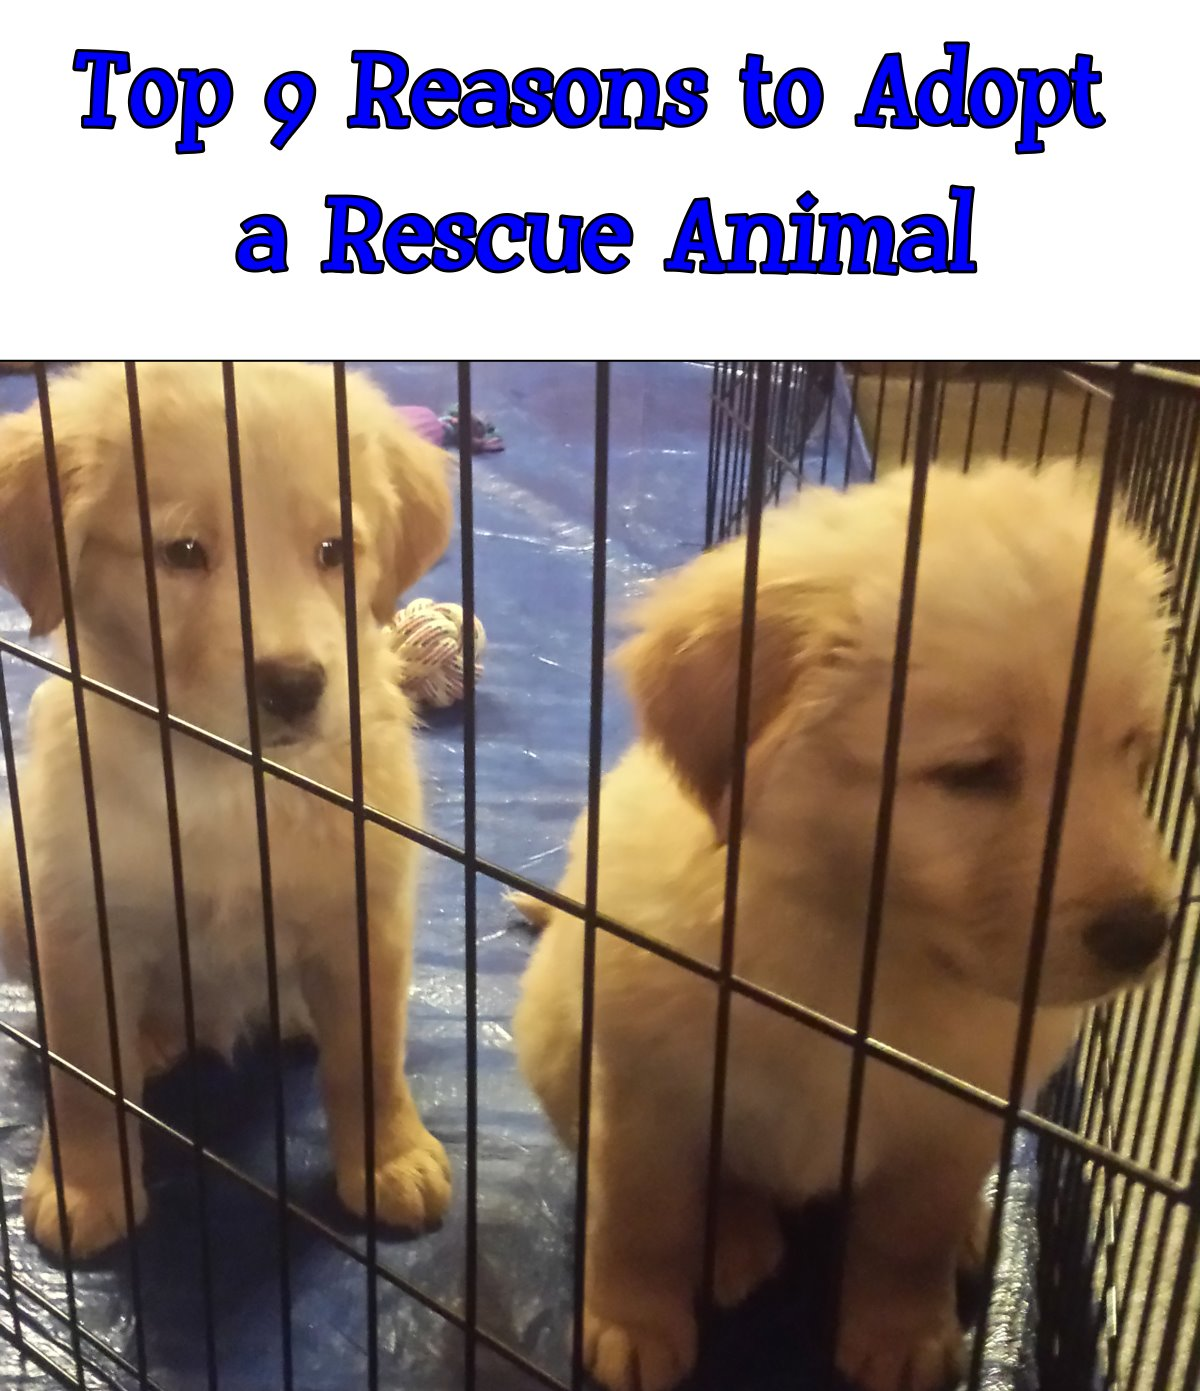 Adopting a Rescue Animal: The Top 9 Reasons to Adopt